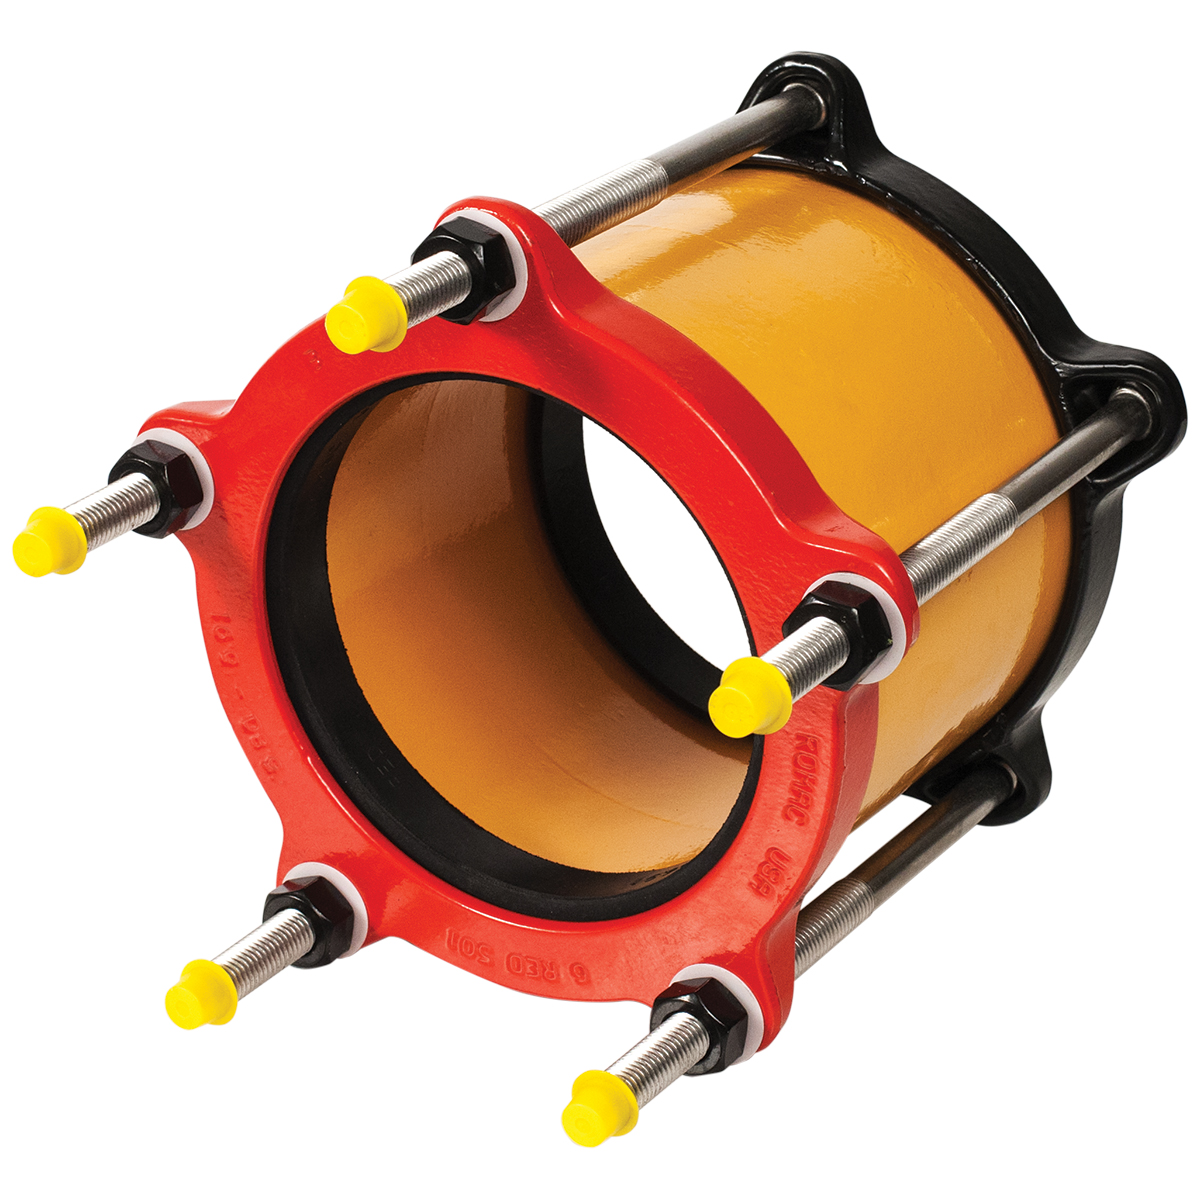 501 - Ductile iron coupling with color-coded end ringsNominal Sizes4 - 12 inchesWorking PressureUp to 25 psiPipe CompatibilitySteel, cast iron, asbestos cement, plastic and other types of pipe